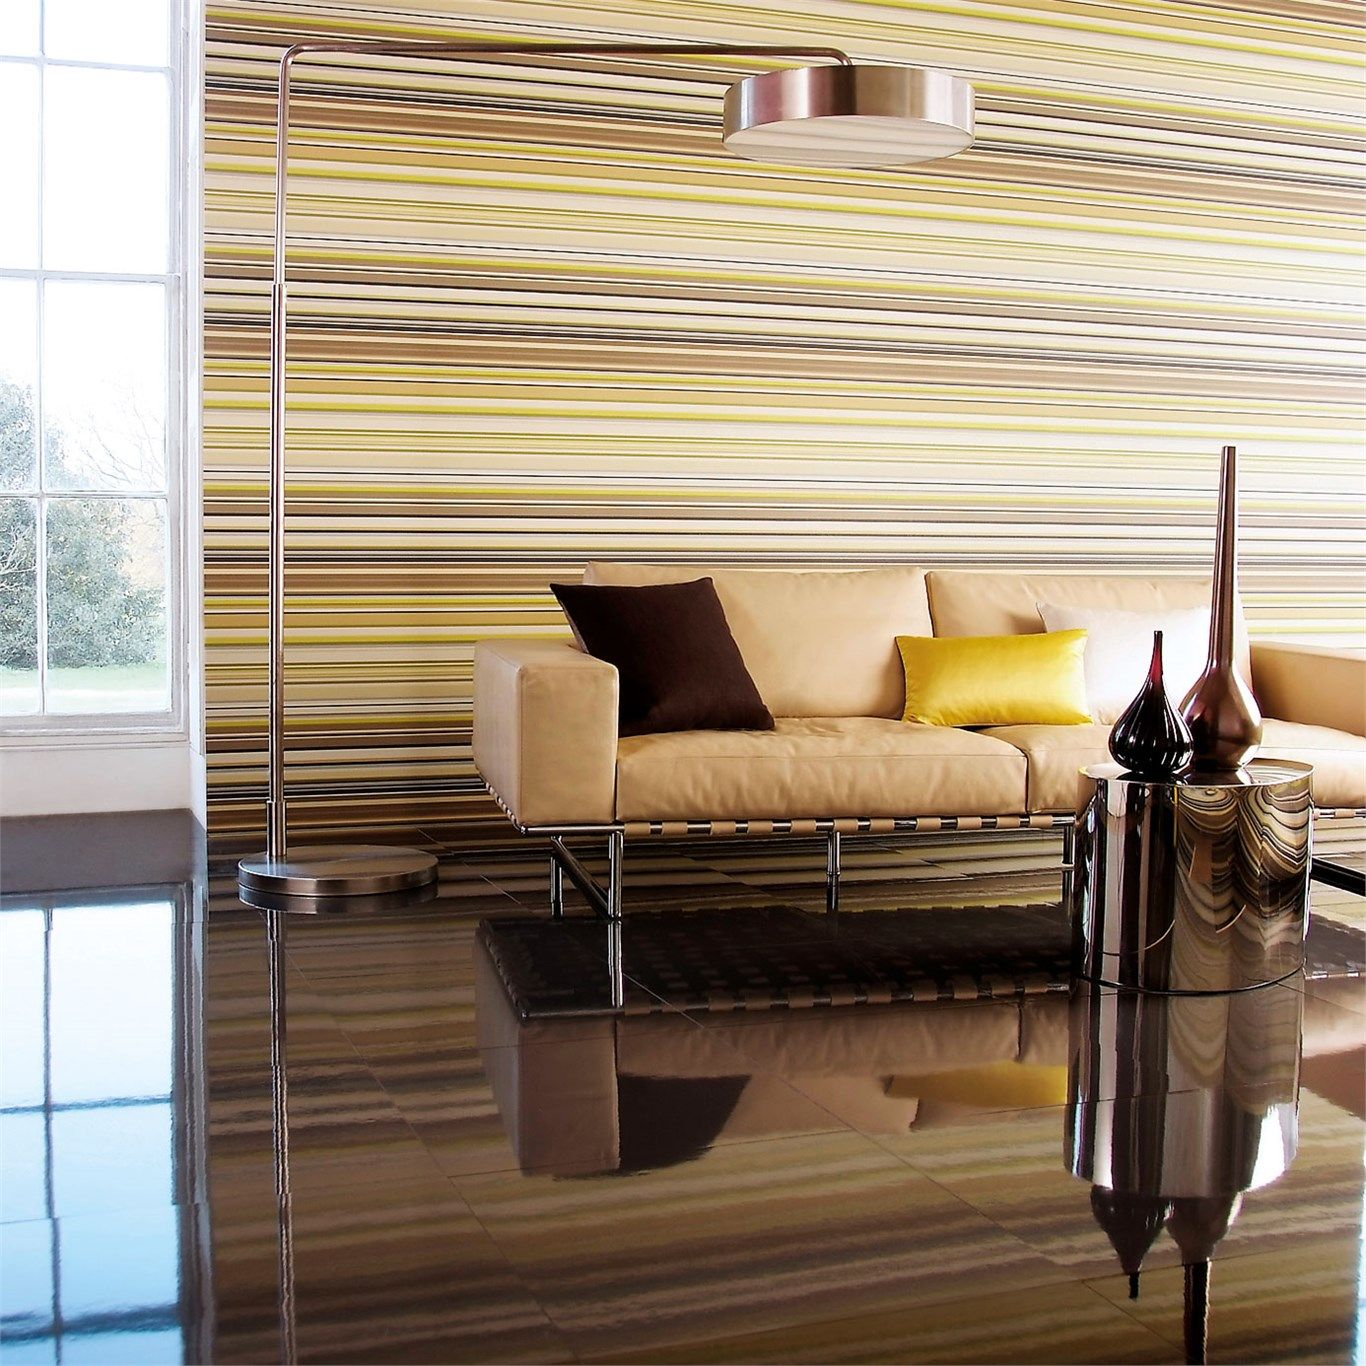 Harlequin   Designer Fabrics And Wallcoverings | Products | British/UK  Fabrics And Wallpapers | Barcode (HSJ47825) | Stripes